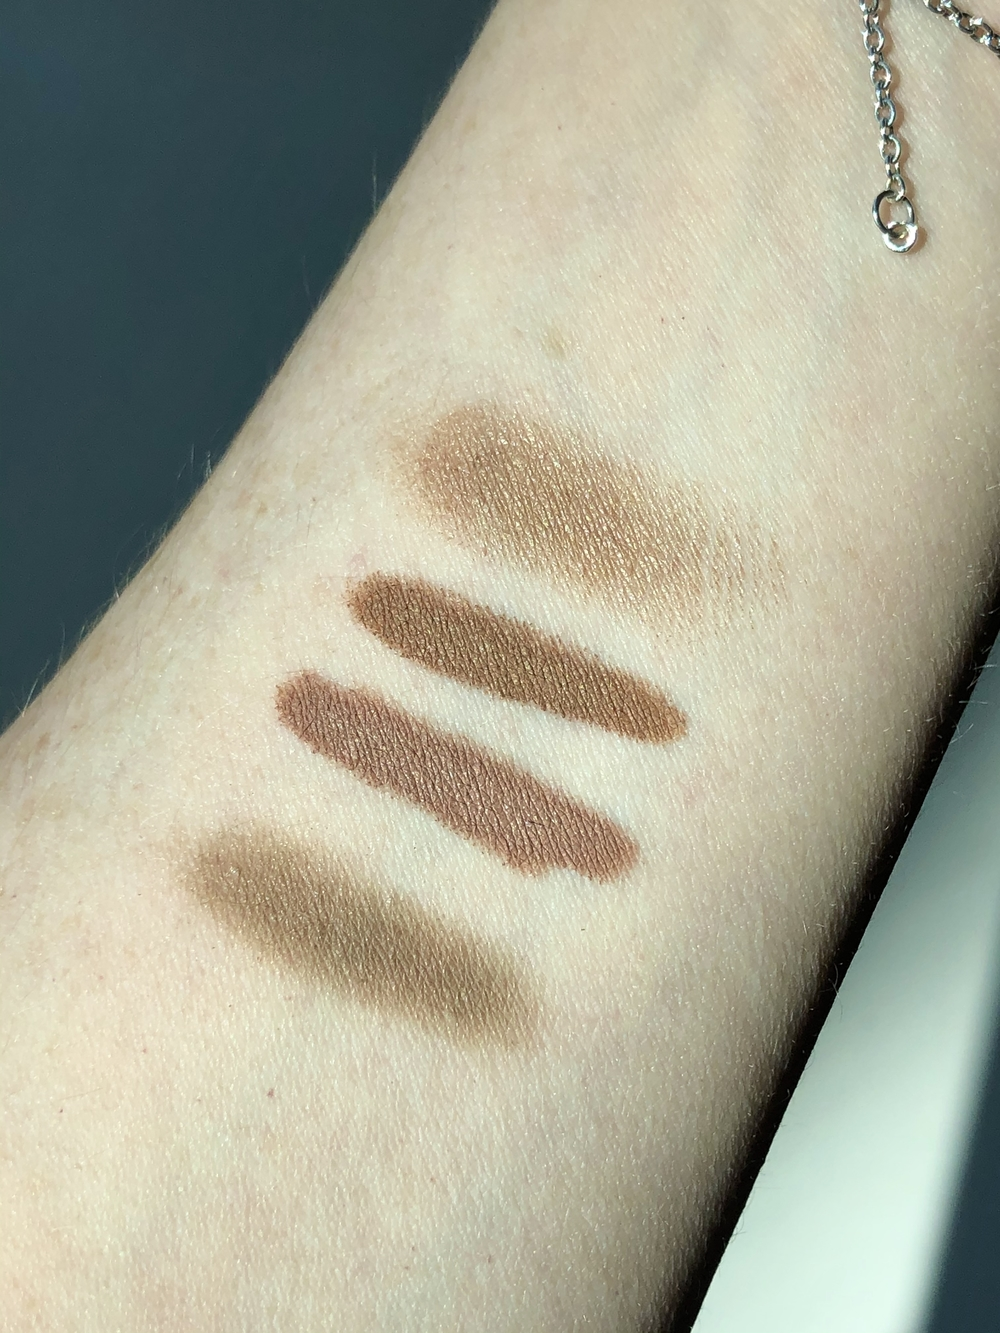 swatches of my everyday eyeshadows: from top to bottom, MAC Paint Pot in Groundwork, Bobbi Brown Cream Shadow Stick in Taupe, Bobbi Brown Cream Shadow in Nude Beach, and Maybelline Color Strike Eye Shadow Pen in Flare